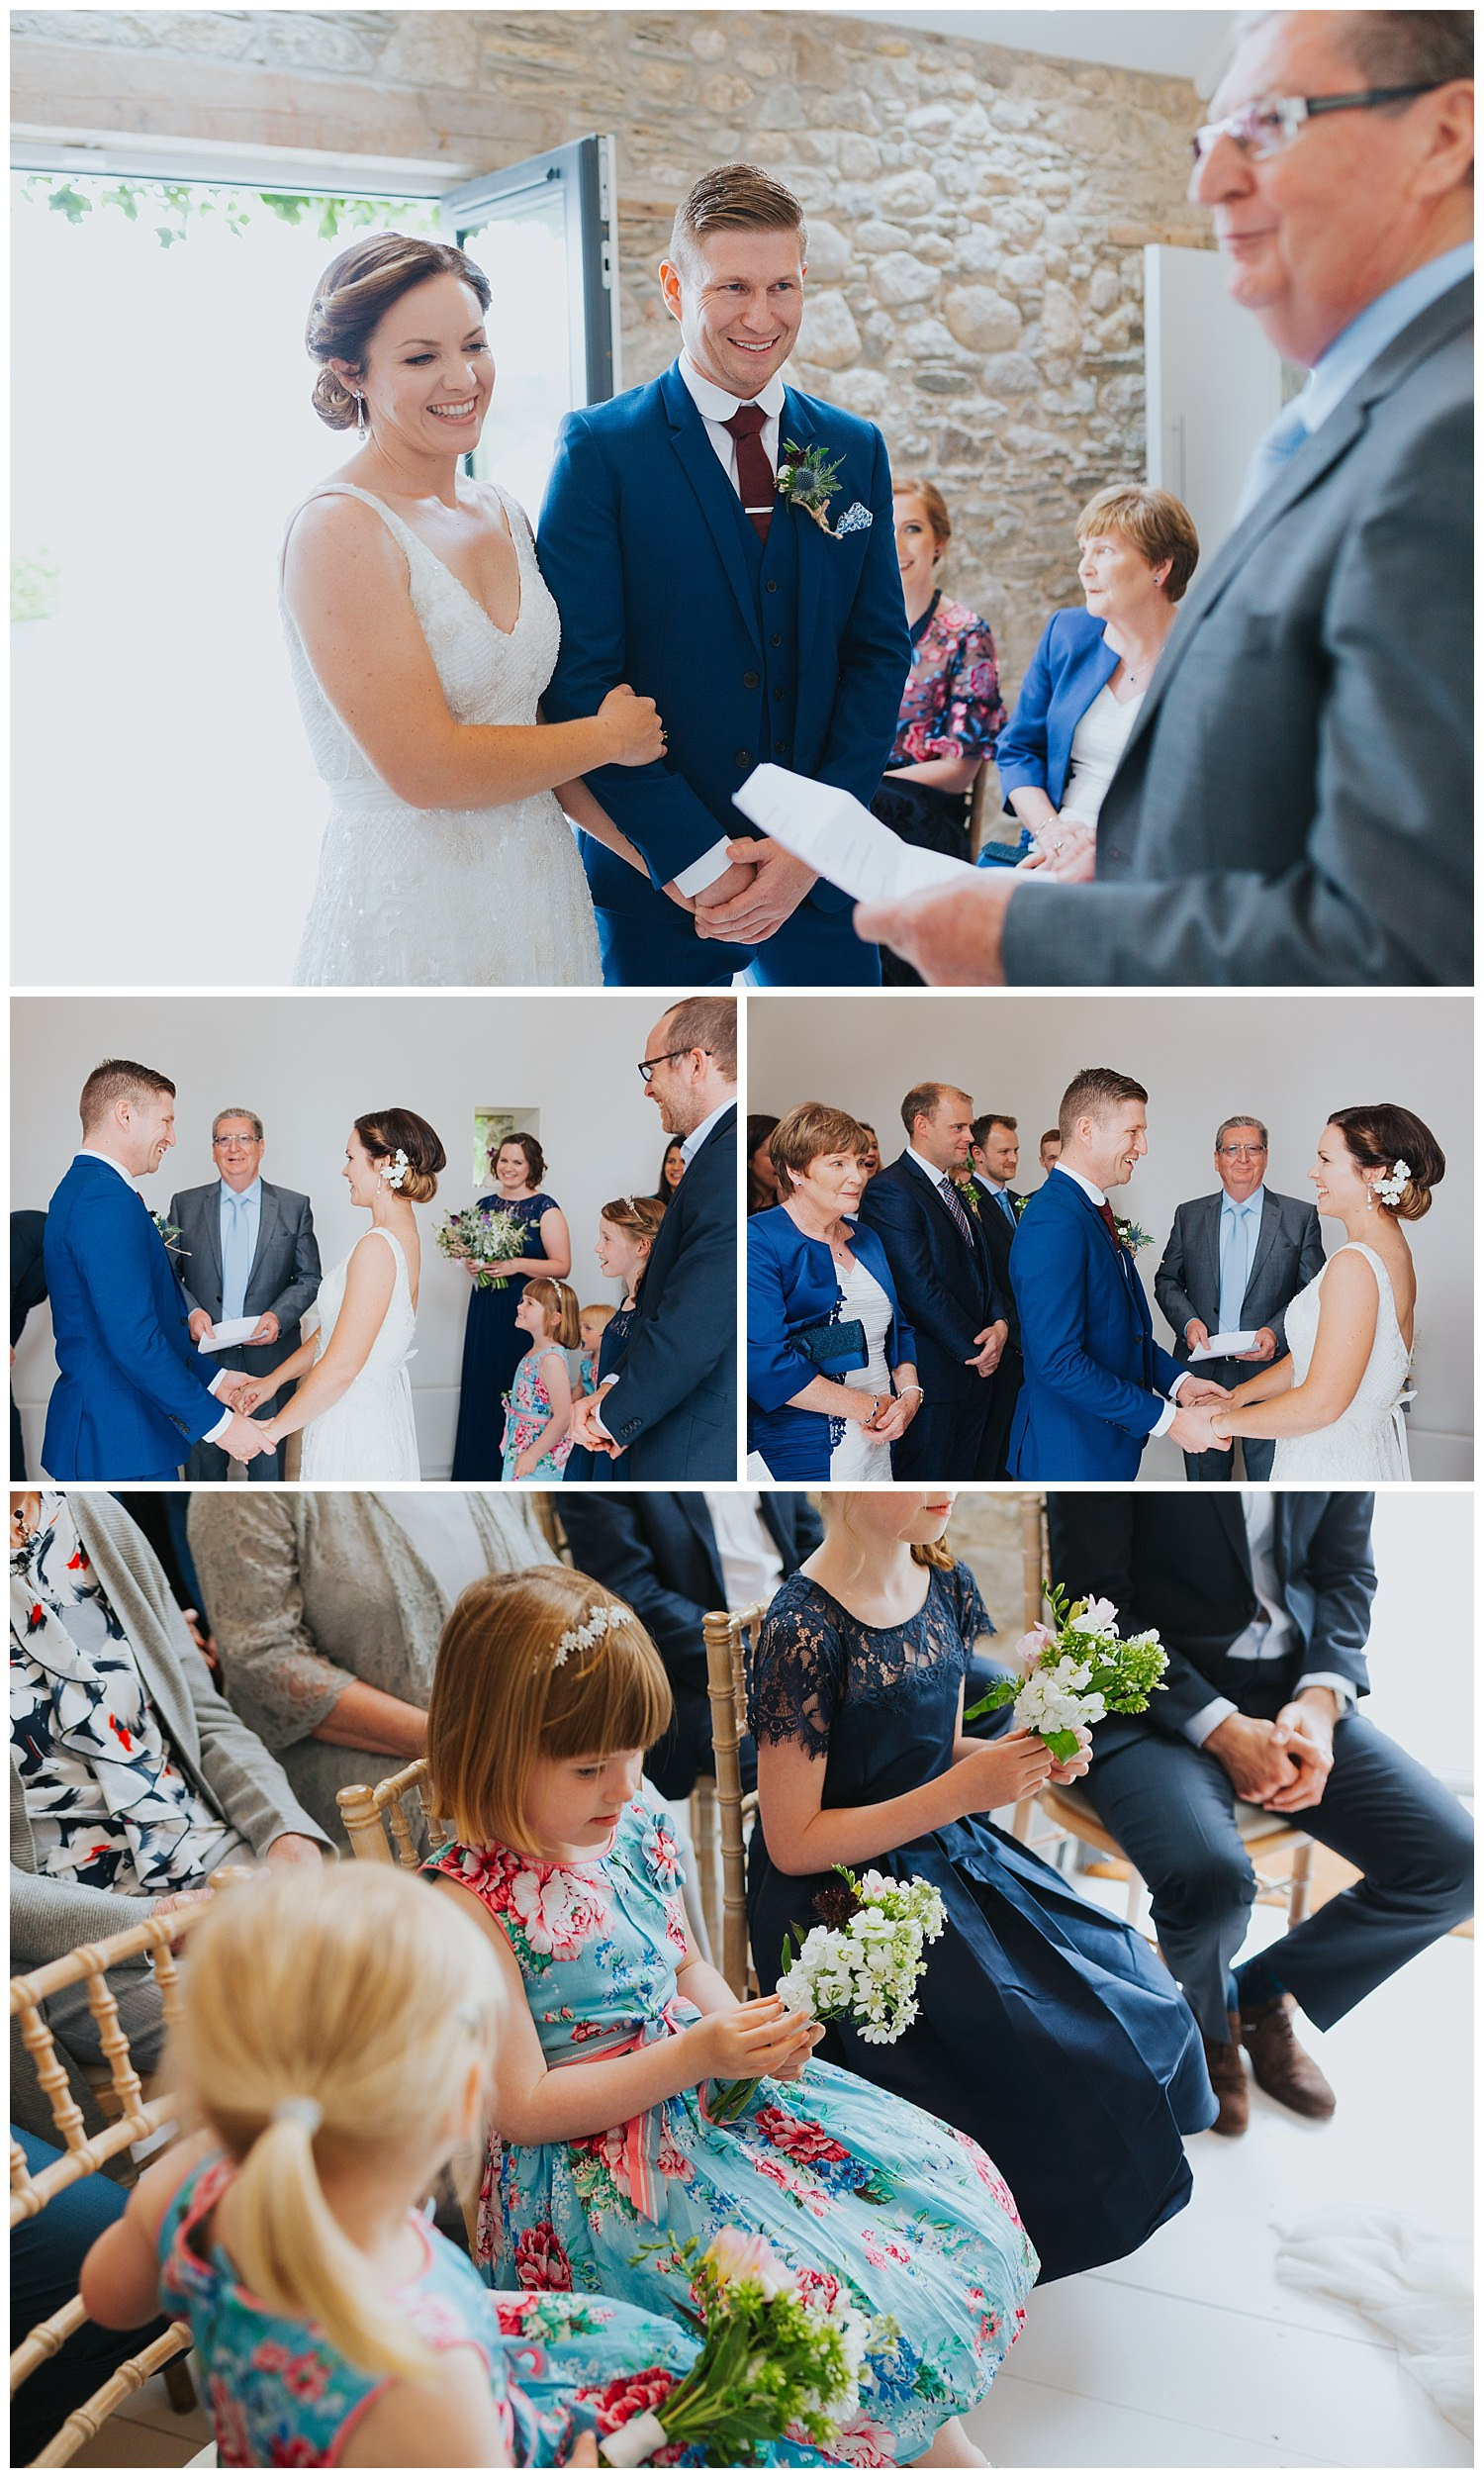 e+t_ballilogue_kilkenny_wedding_photographer_liviafigueiredo_88.jpg